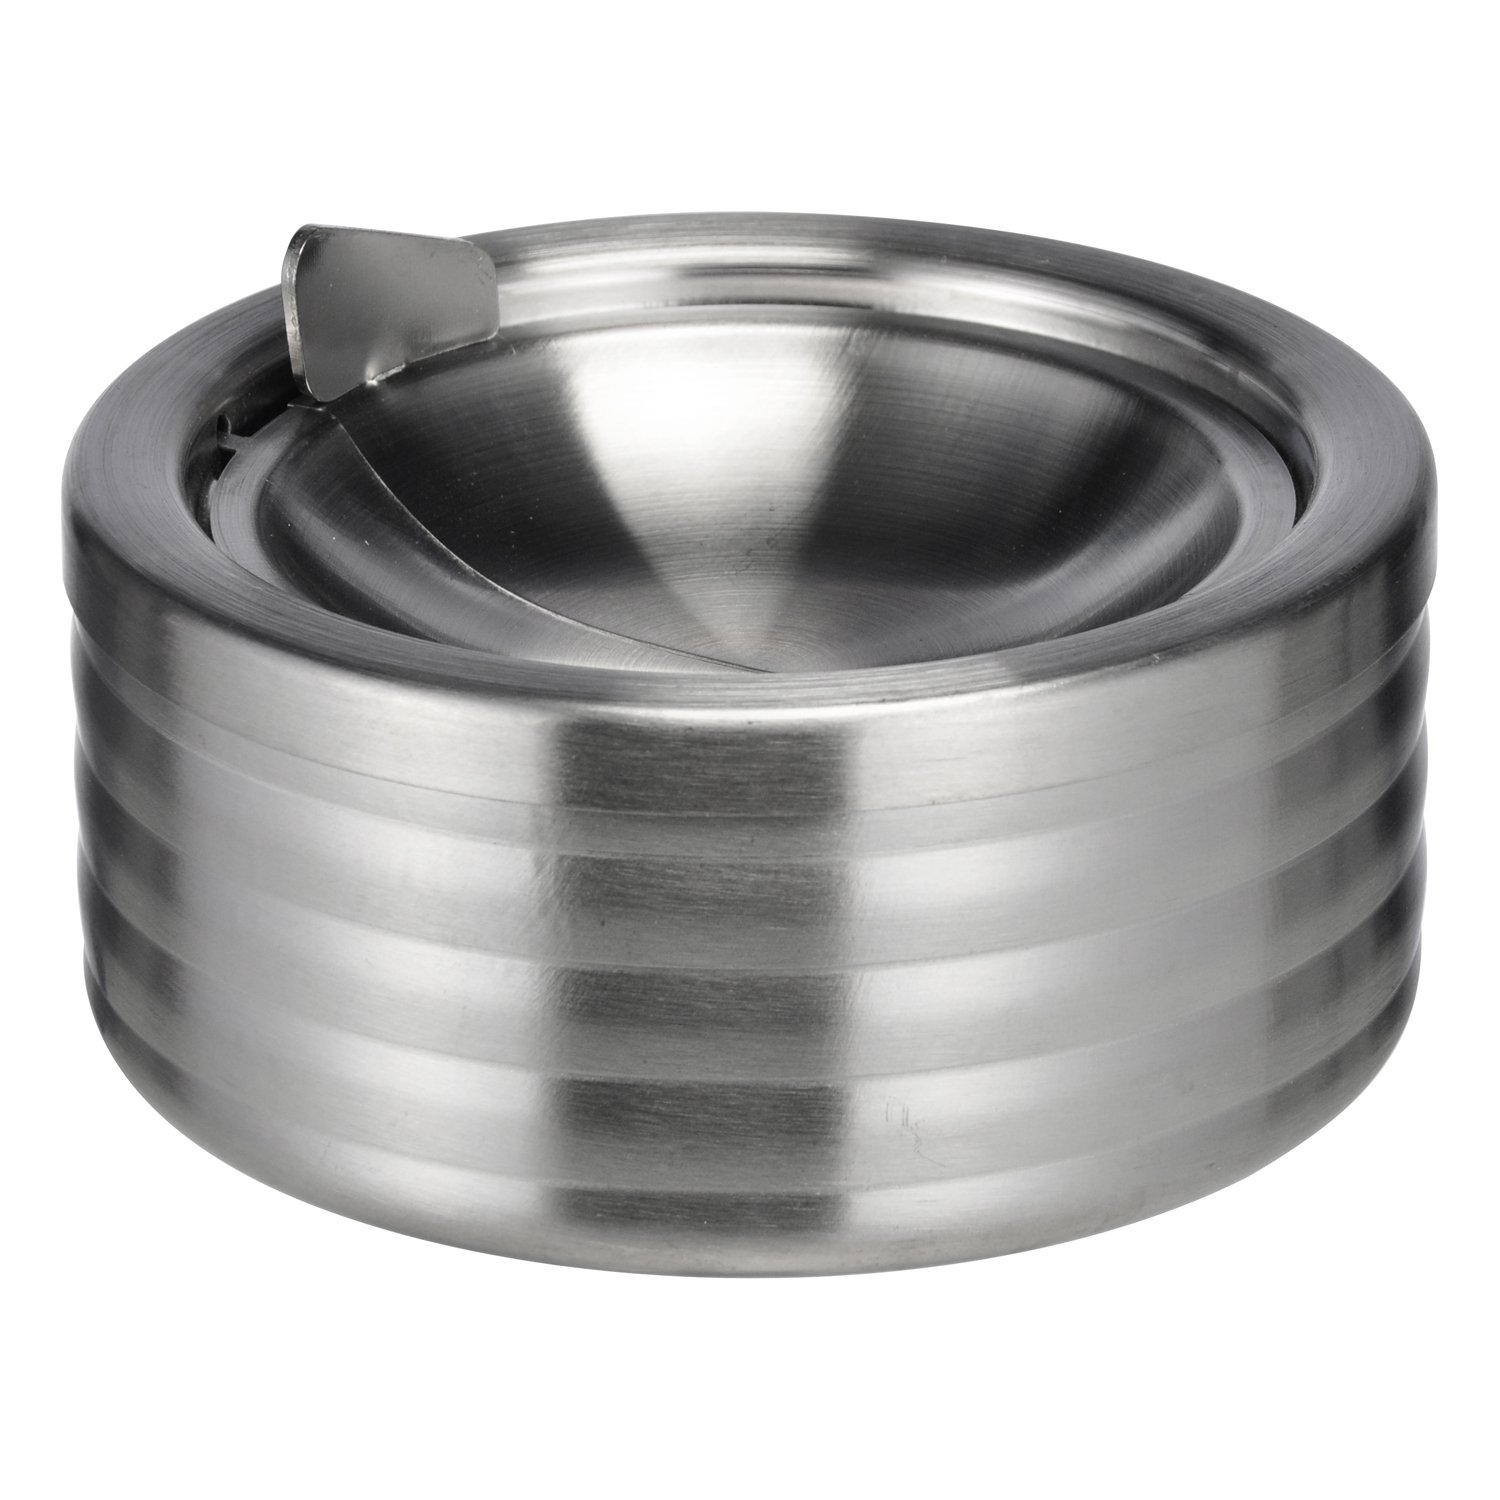 Land-House-Shop, stainless steel wind ashtray with hinged, folding lid, 11.8 cm diameter